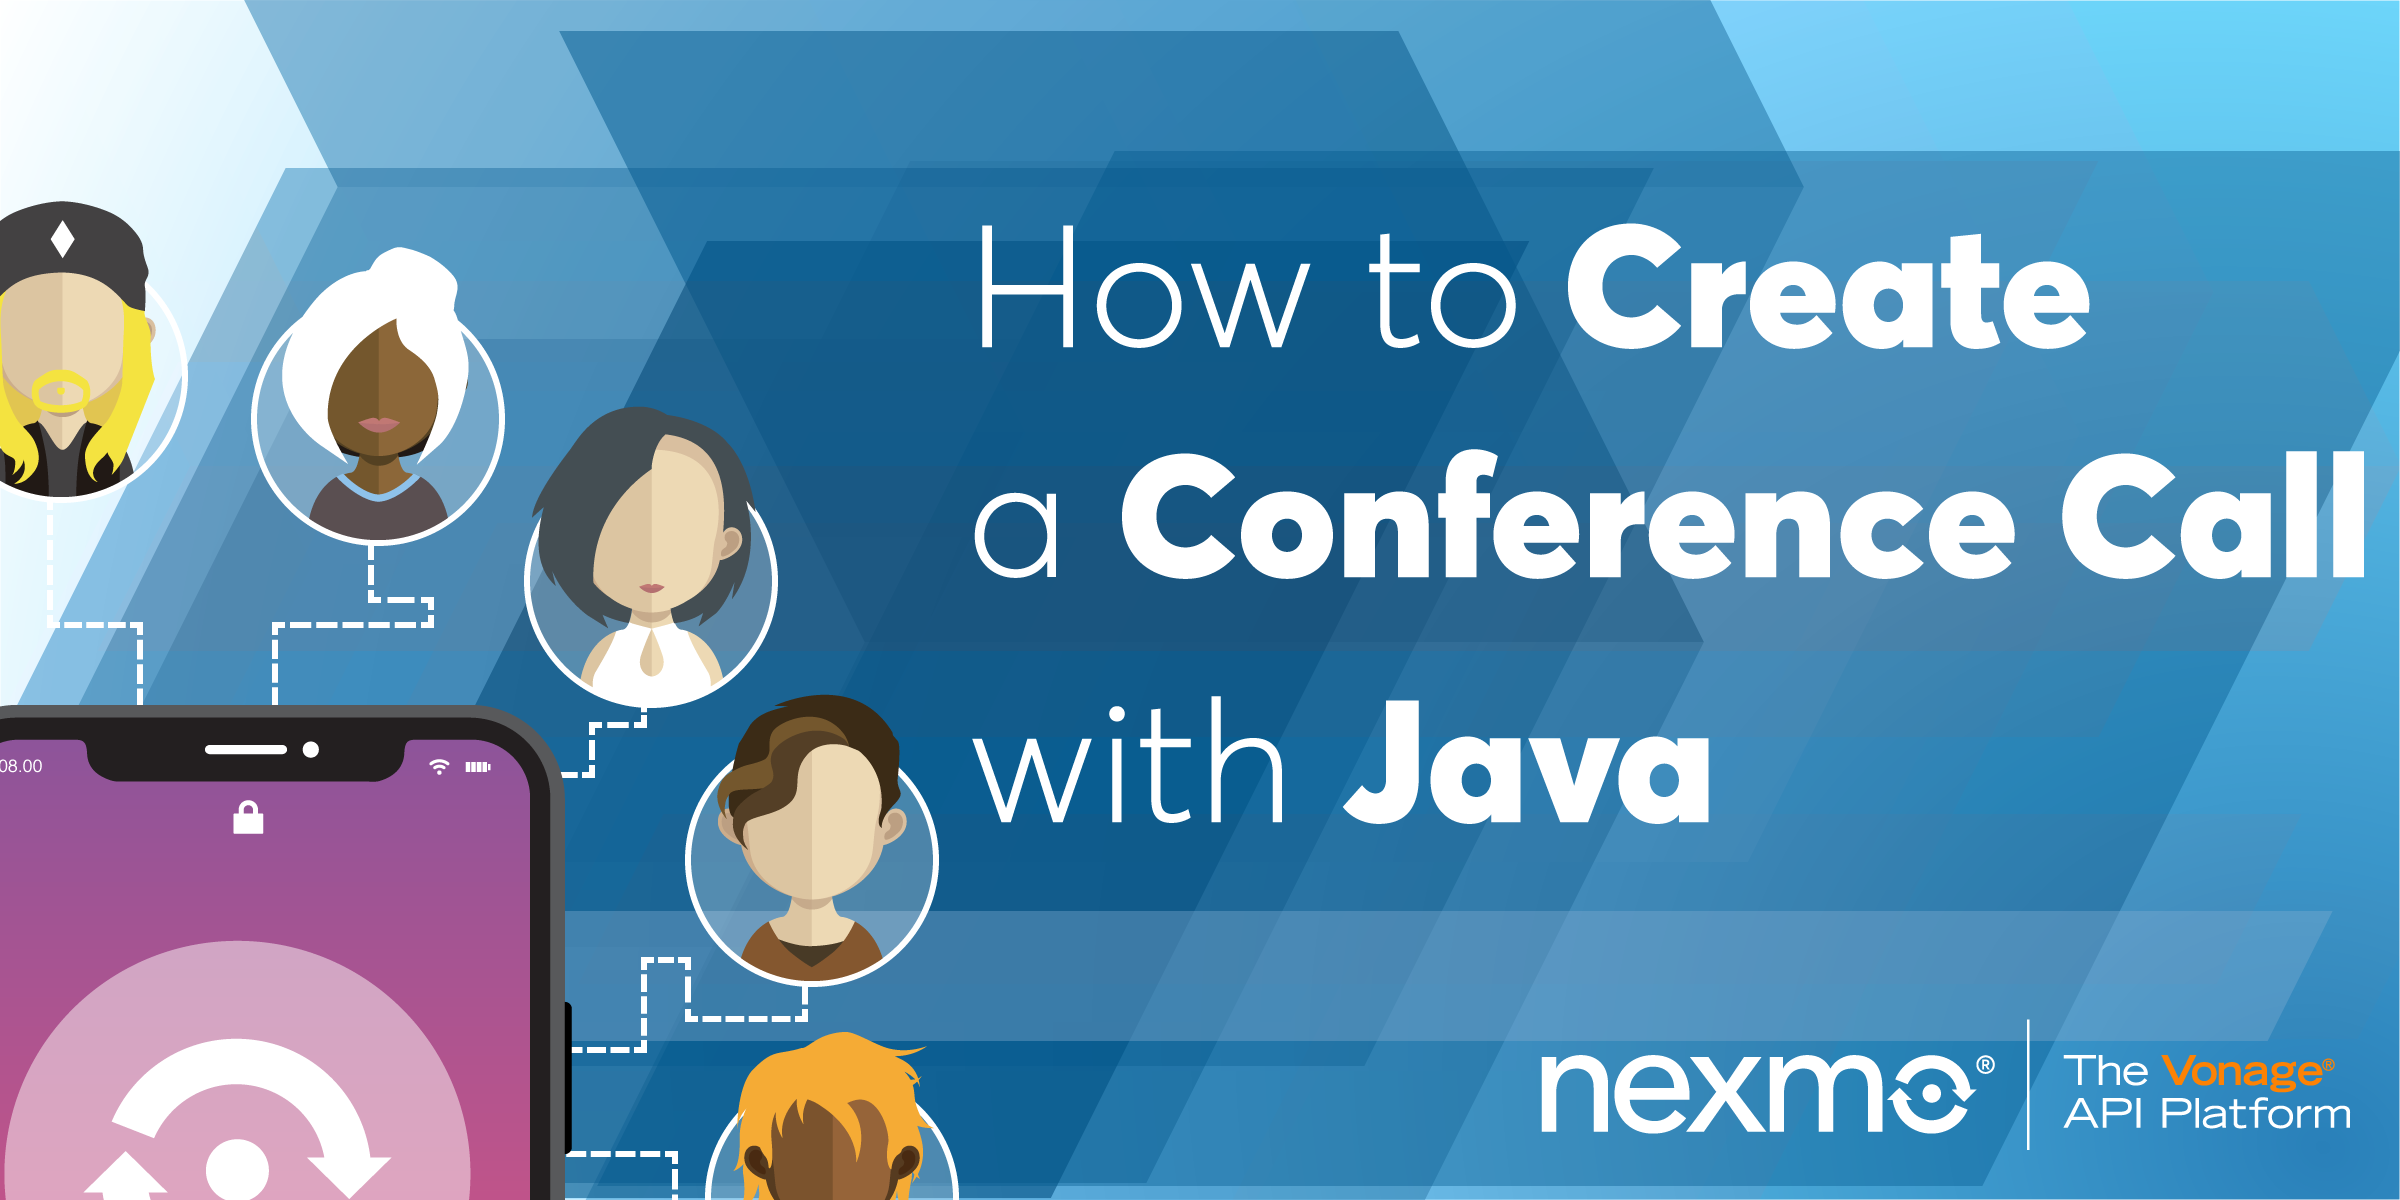 How to Create a Conference Call with Java